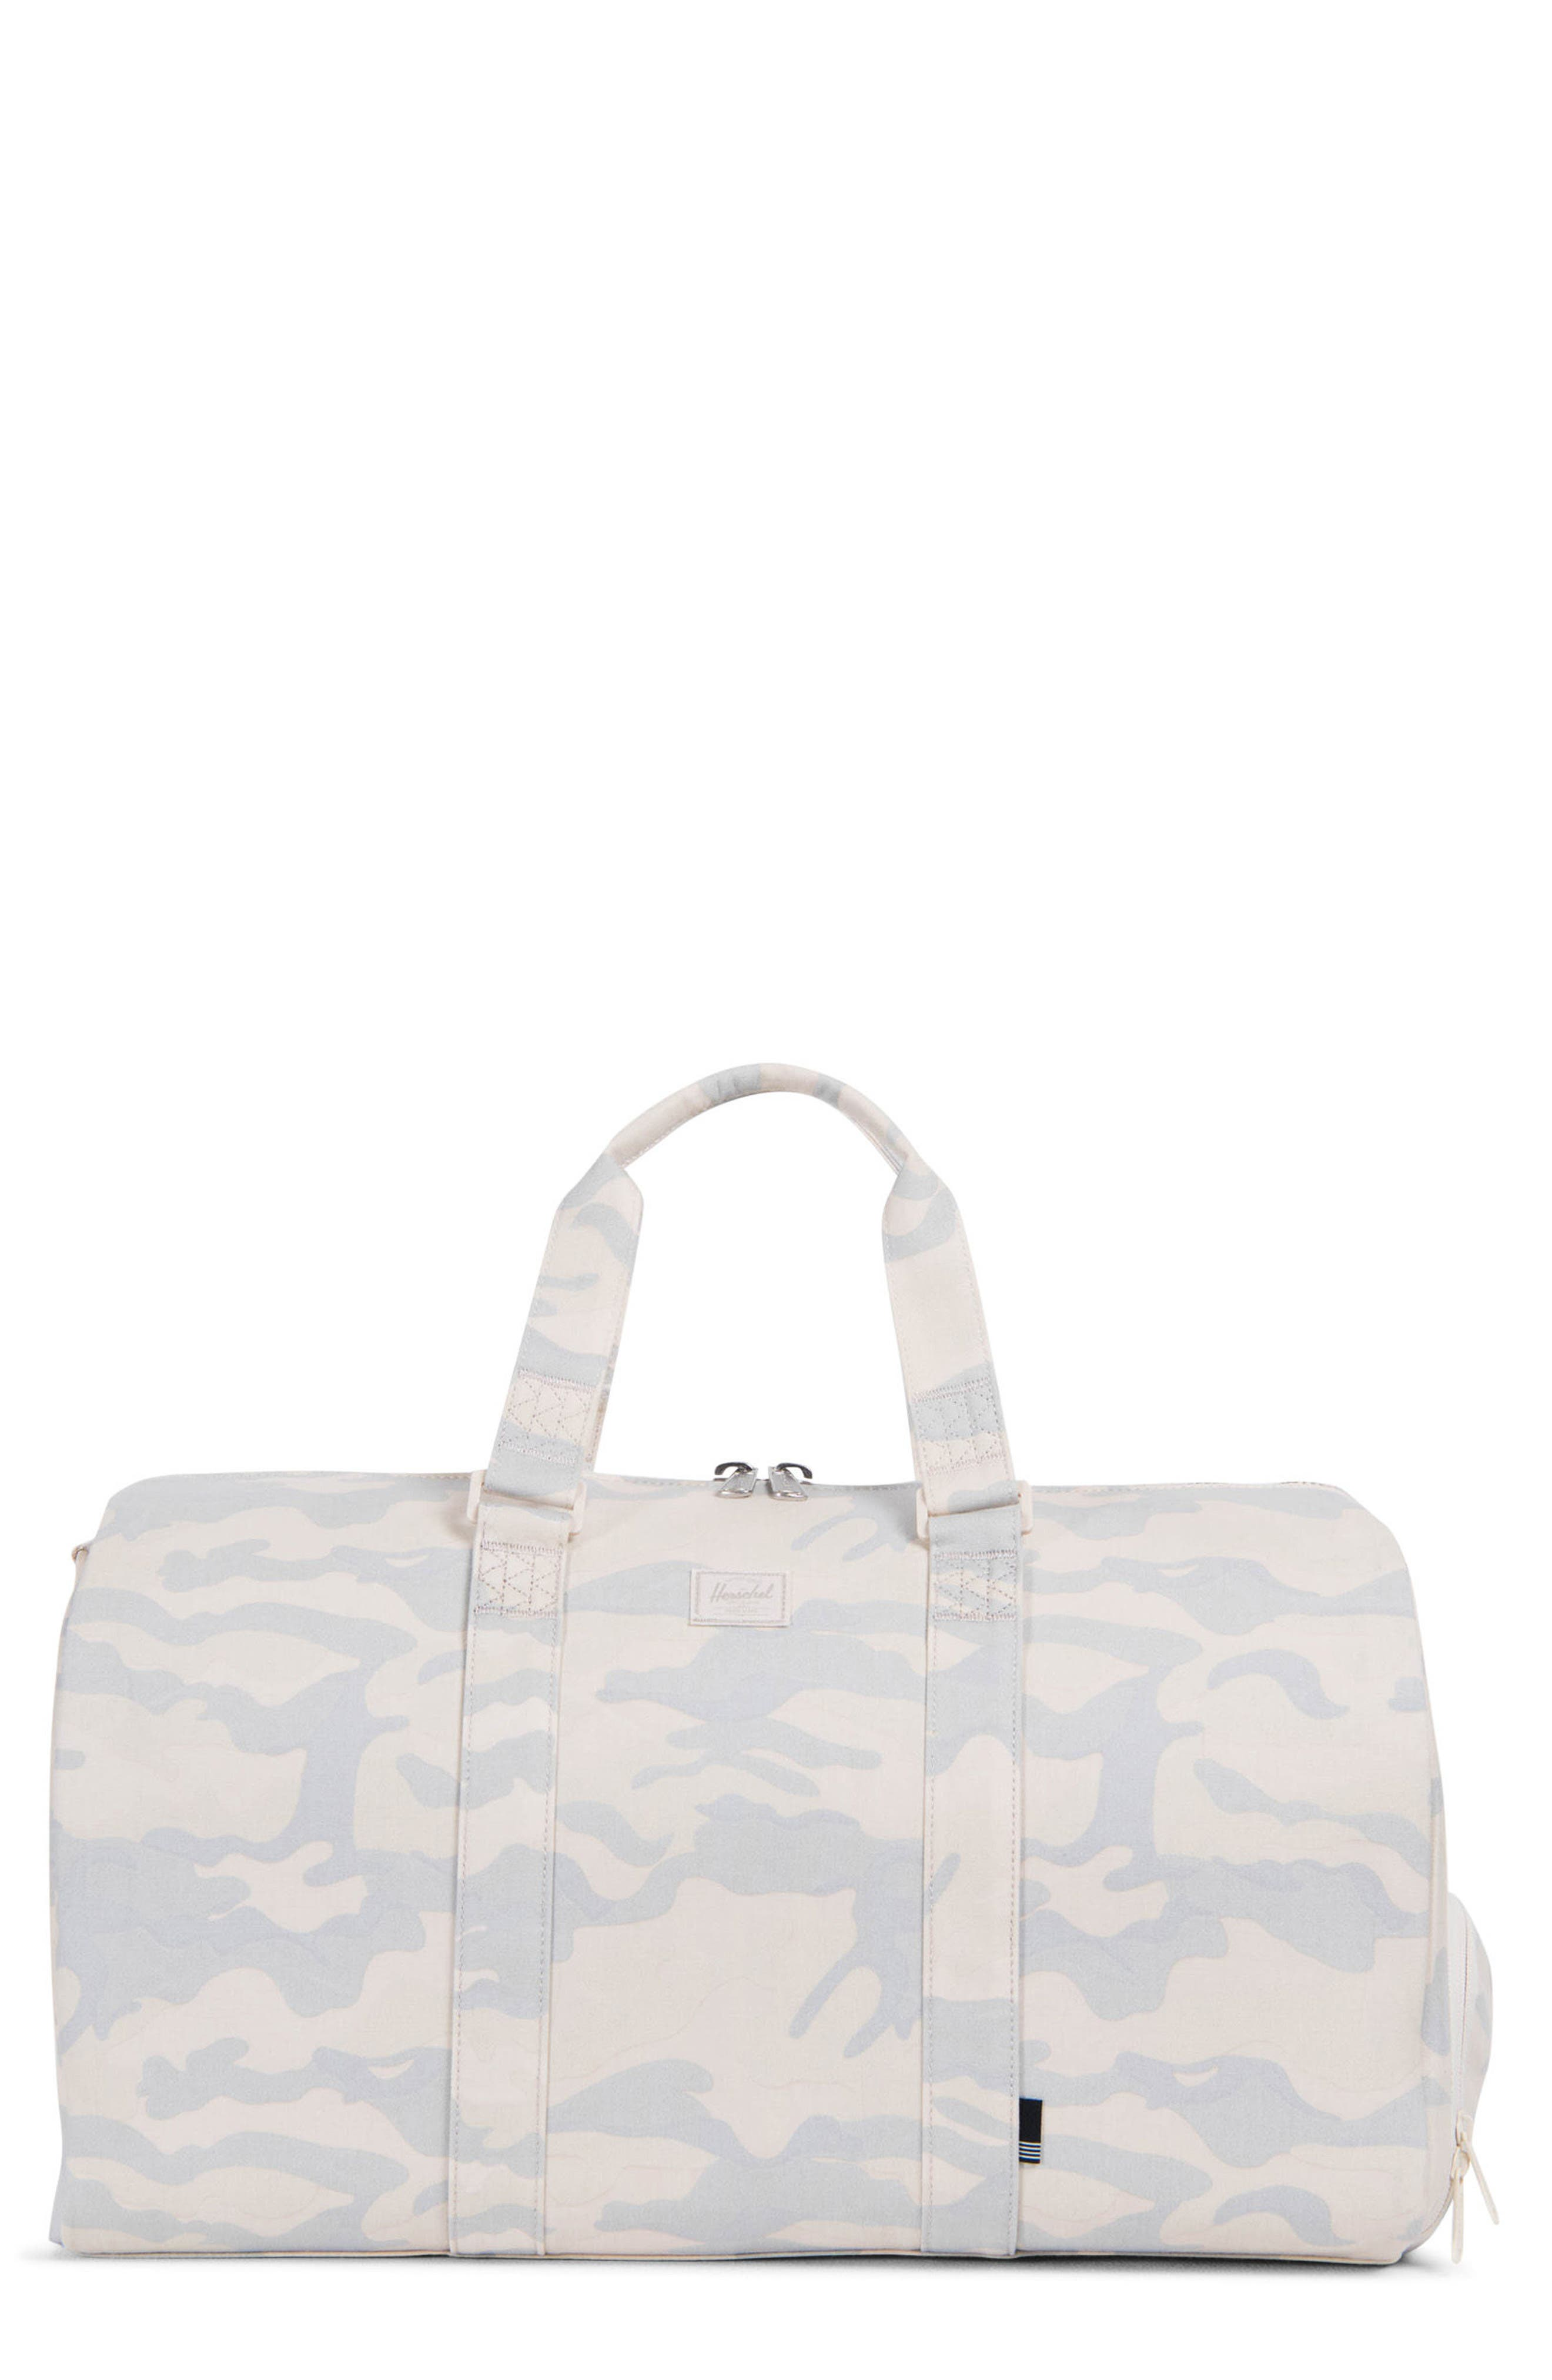 Novel Cotton Canvas Duffel Bag,                         Main,                         color, 250